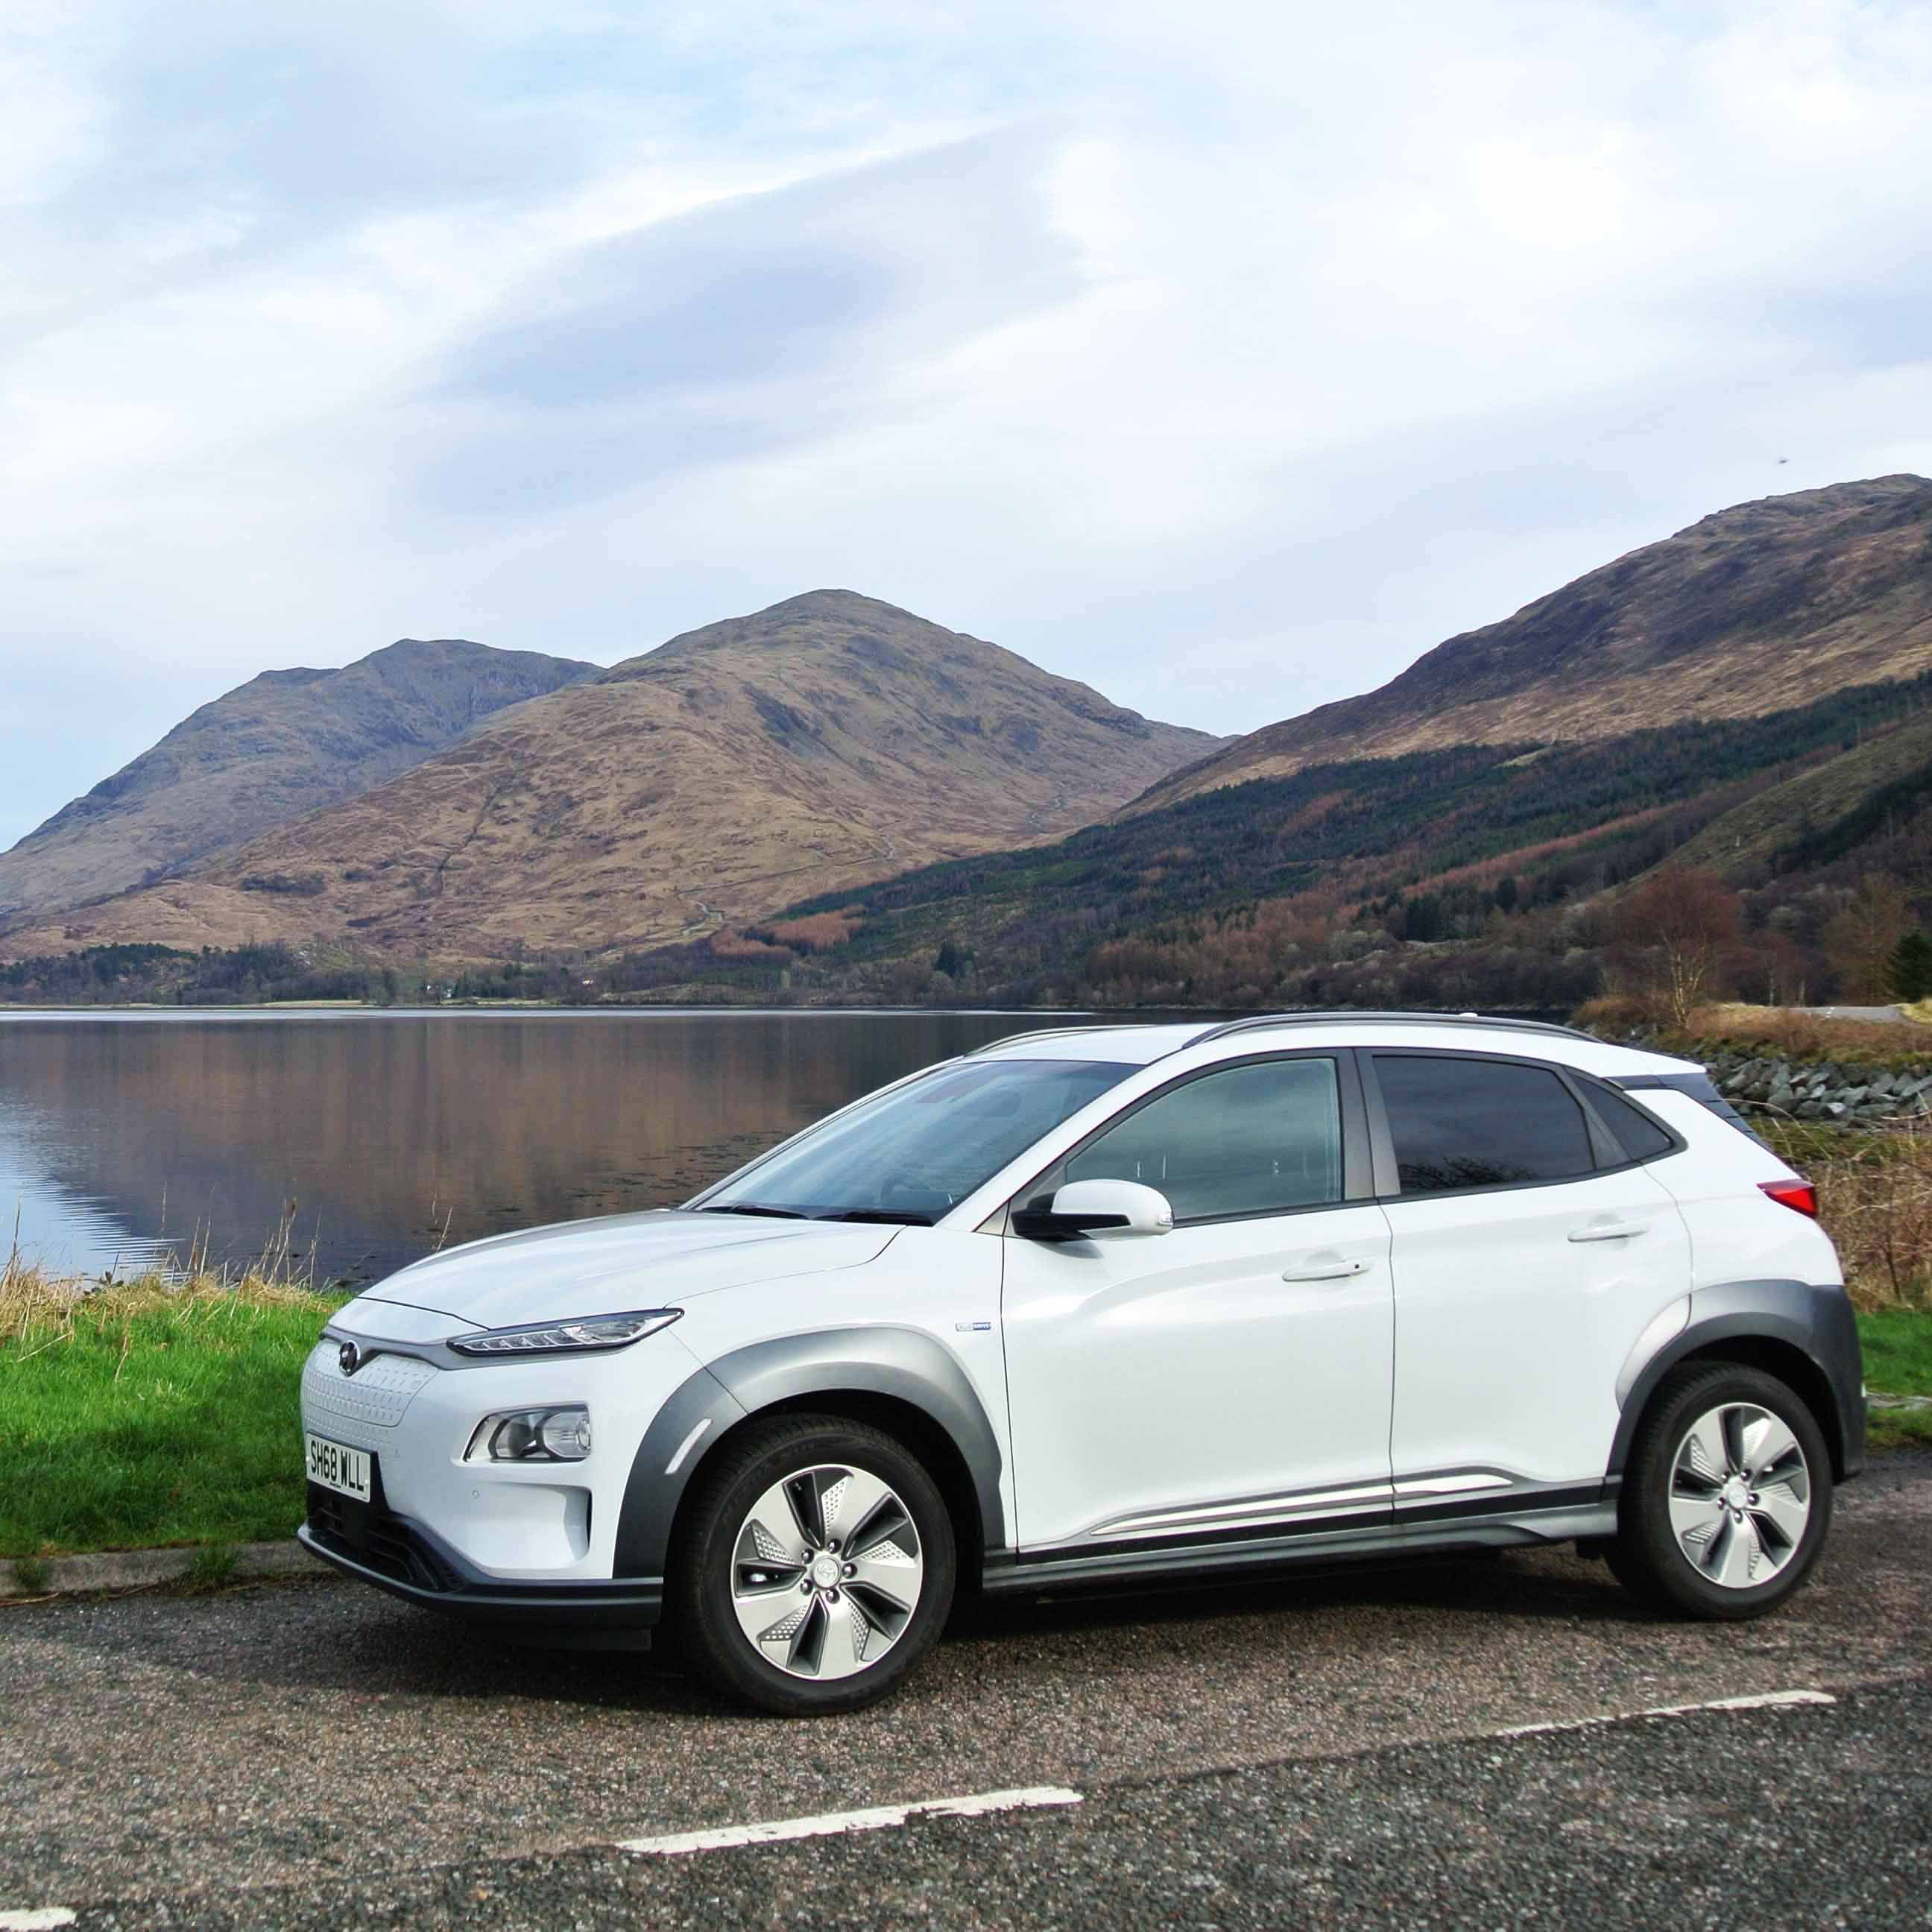 Electrifying and economical – that's the all-new Hyundai Kona electric! We took this SUV for a spin and found it fun to drive and amazingly cheap to run.  Find out how the Hyundai Kona Electric handled a 110-mile family road trip. #ElectricCars #Hyundai #SUV #Car #Review